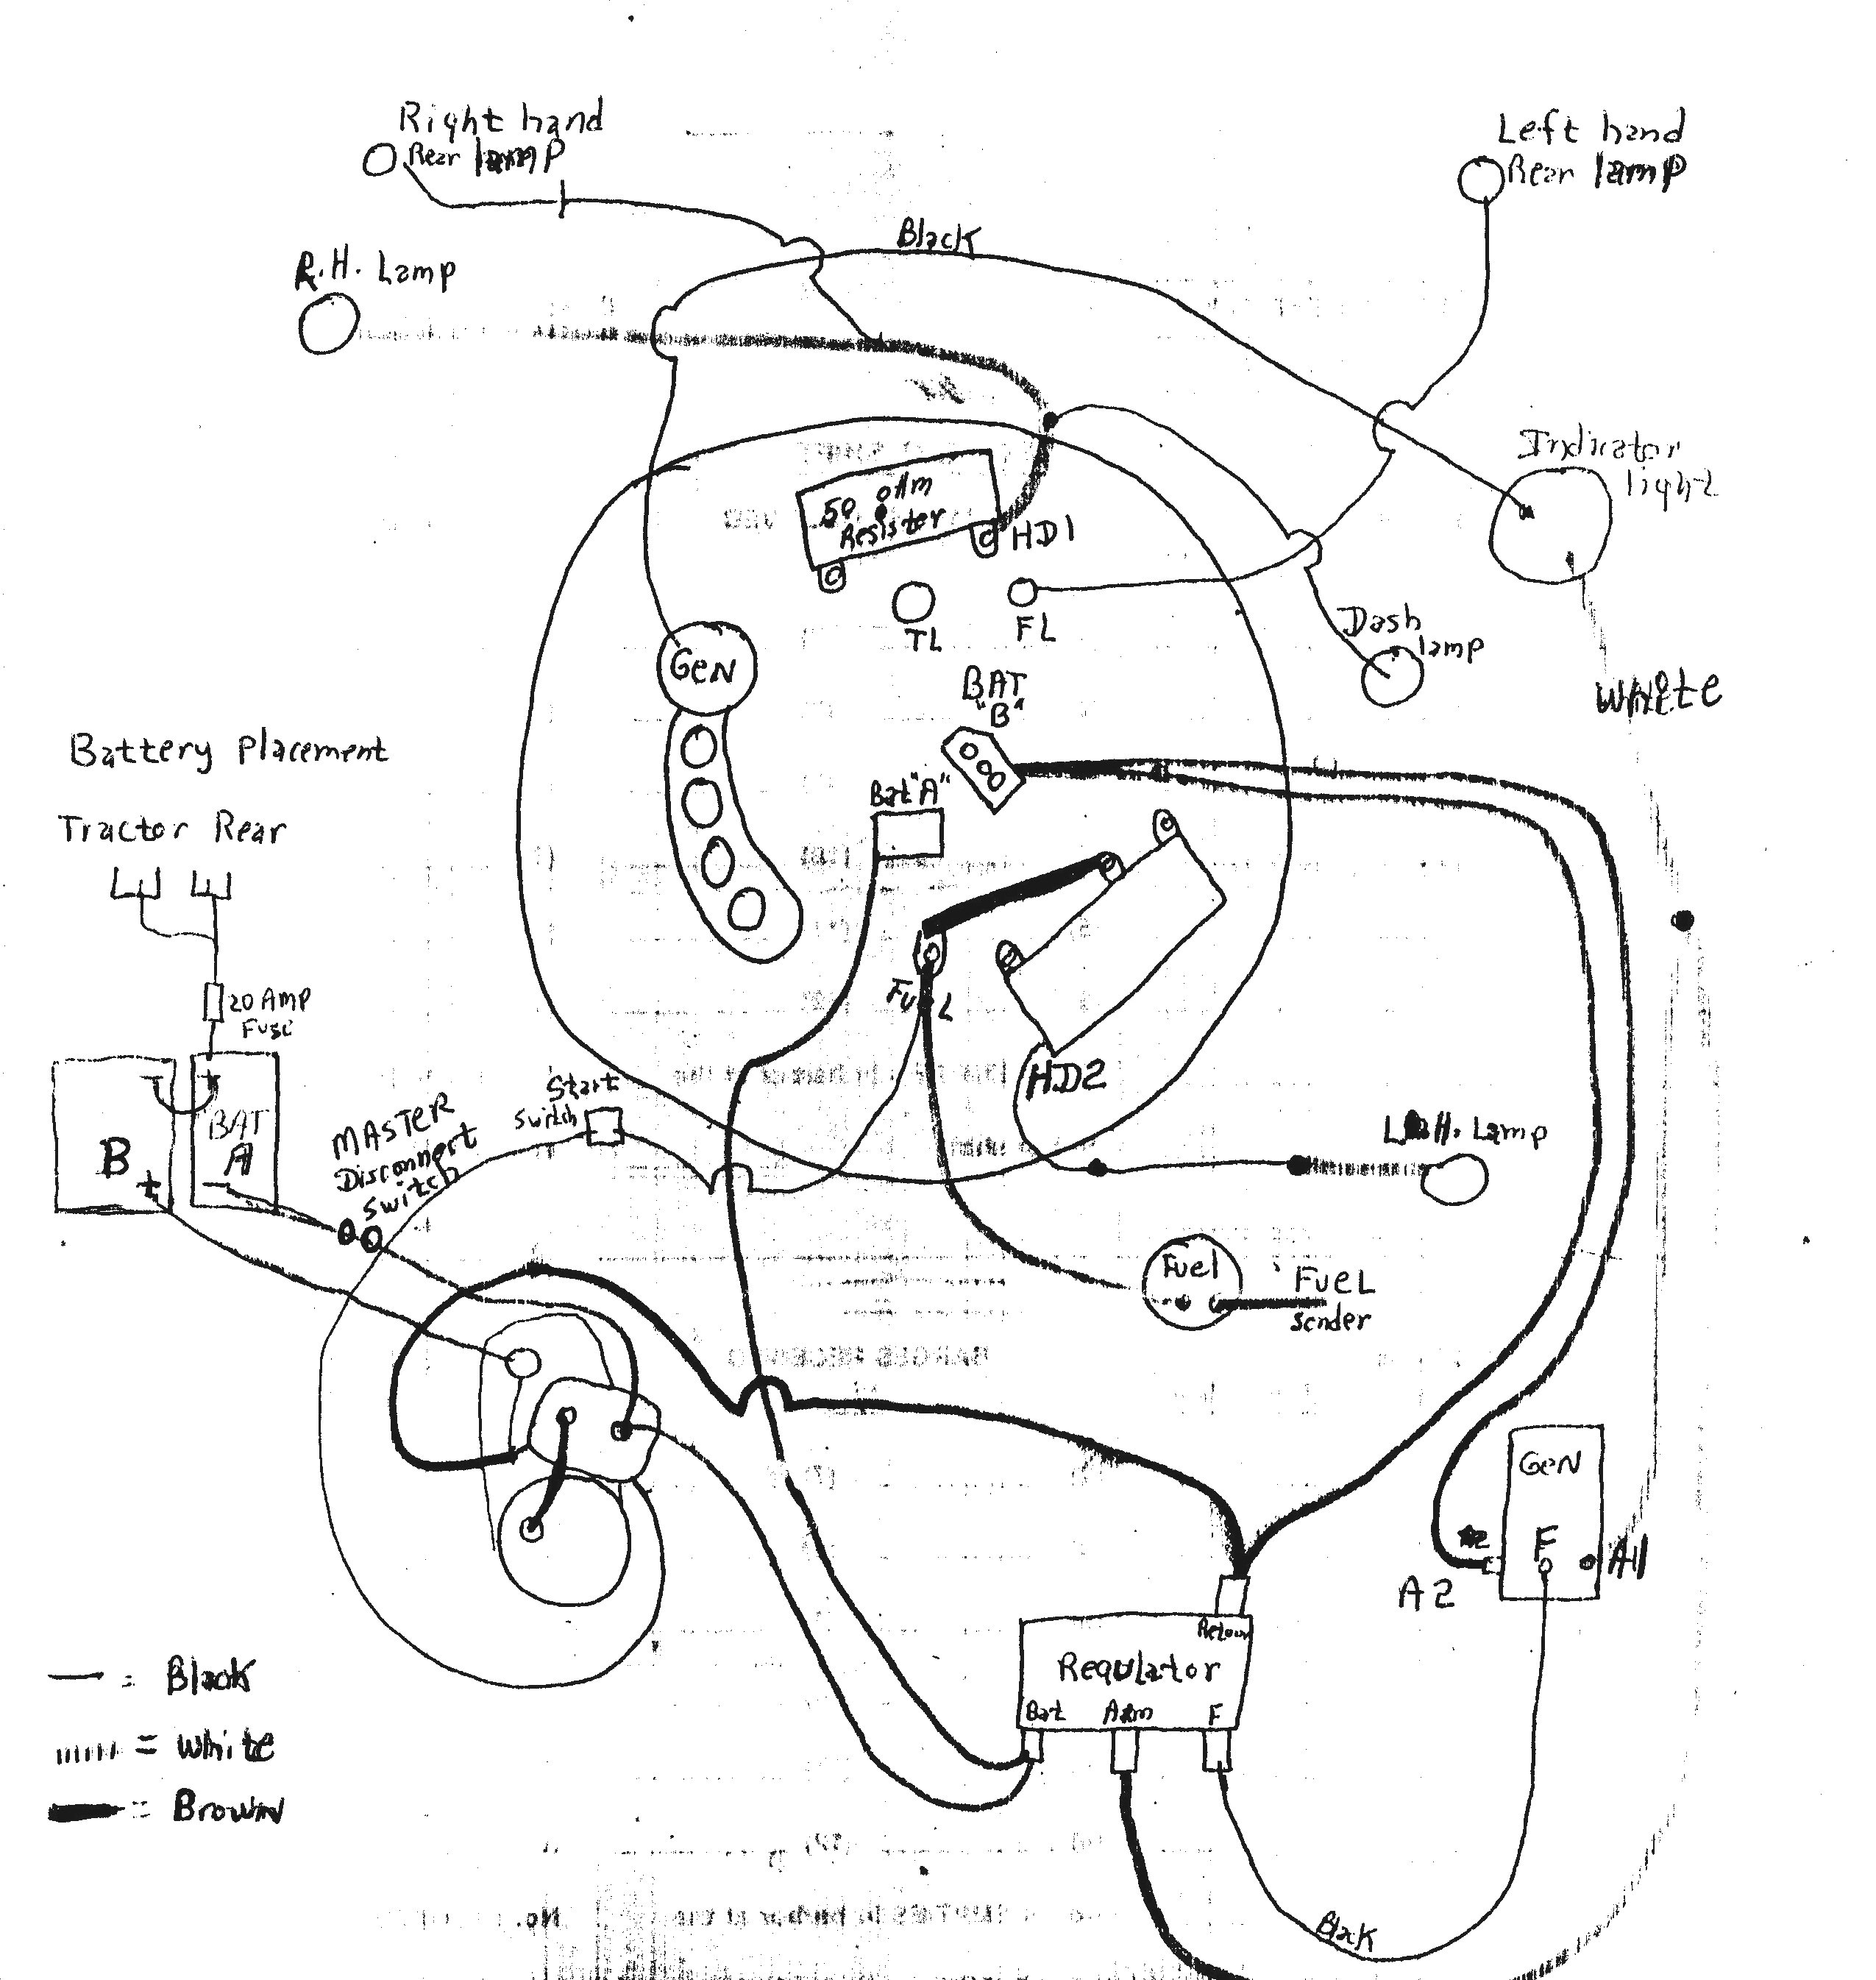 24volt_wiring_diagram Jd Battery Wiring Diagram on john deere generator wiring diagram, ford 3000 wiring diagram, john deere 4020 transmission diagram, john deere 4020 clutch replacement diagram, jd 4020 injector pump cutaway, john deere 4020 parts diagram, ford 7600 wiring diagram, jd 4020 oil filter, jd 4020 flywheel, john deere 4020 hydraulic diagram, ford 1710 wiring diagram, jd 4020 engine, jd 4020 radiator, mf 230 wiring diagram,